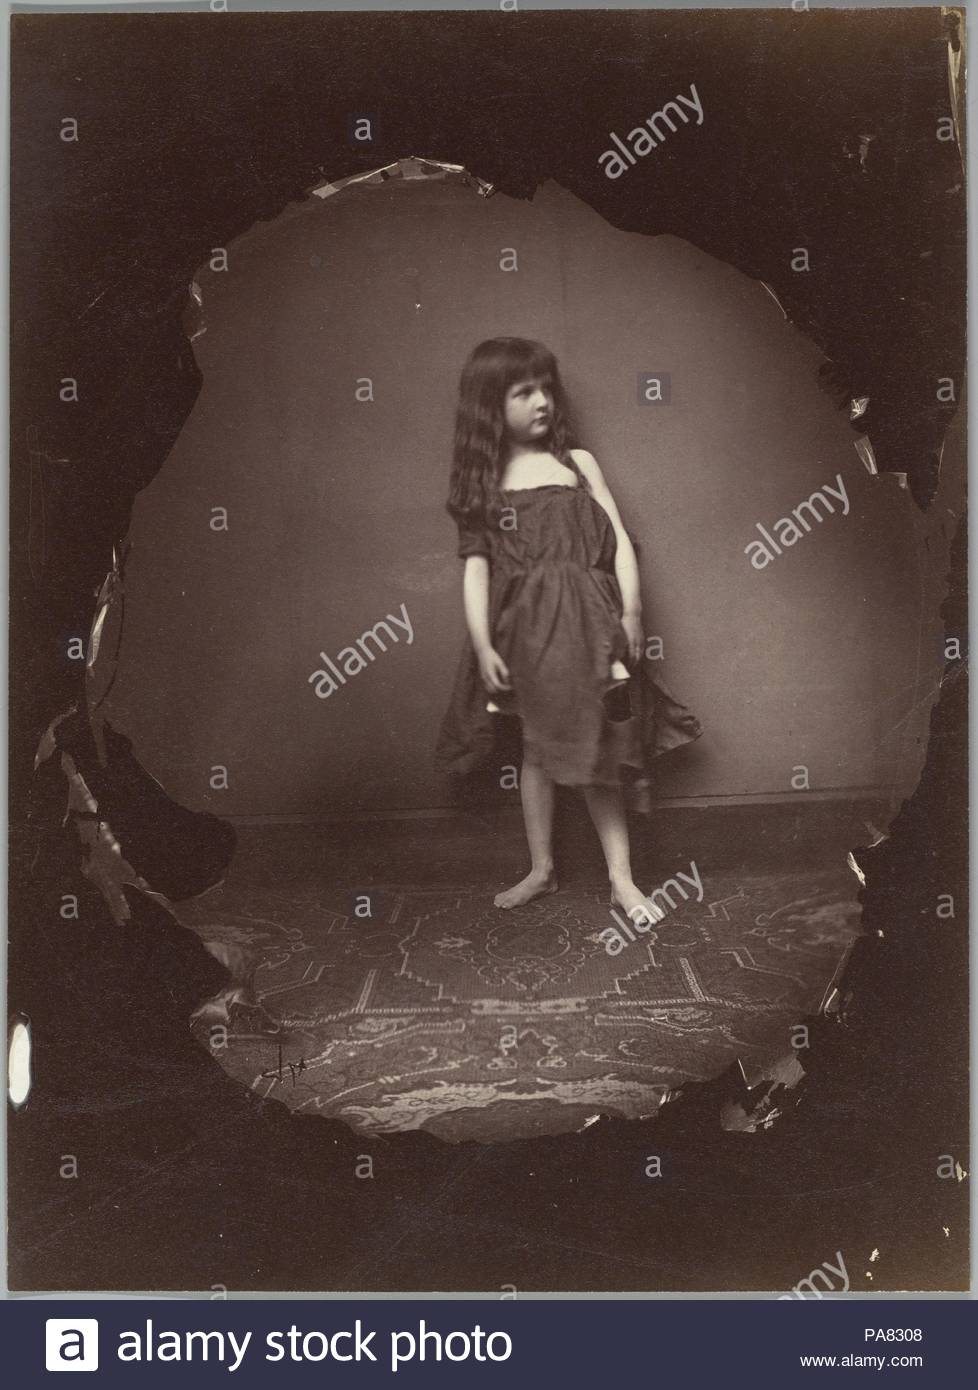 'The Prettiest Doll in the World'. Artist: Lewis Carroll (British, Daresbury, Cheshire 1832-1898 Guildford). Dimensions: 7 3/4 x 5 13/16. Subject: Alexandra 'Xie' Rhoda Kitchin (British, 1864-1925). Date: July 5, 1870.  The Reverend Charles Lutwidge Dodgson, a mathematics professor at Oxford better known by his pen name, Lewis Carroll, often photographed friends' children outfitted in storybook costumes, playacting the sorts of fantastic scenes that appear in his writing. The model in this photograph, Alexandra 'Xie' Kitchin, posed more than fifty times over eleven years, frequently for images - Stock Image